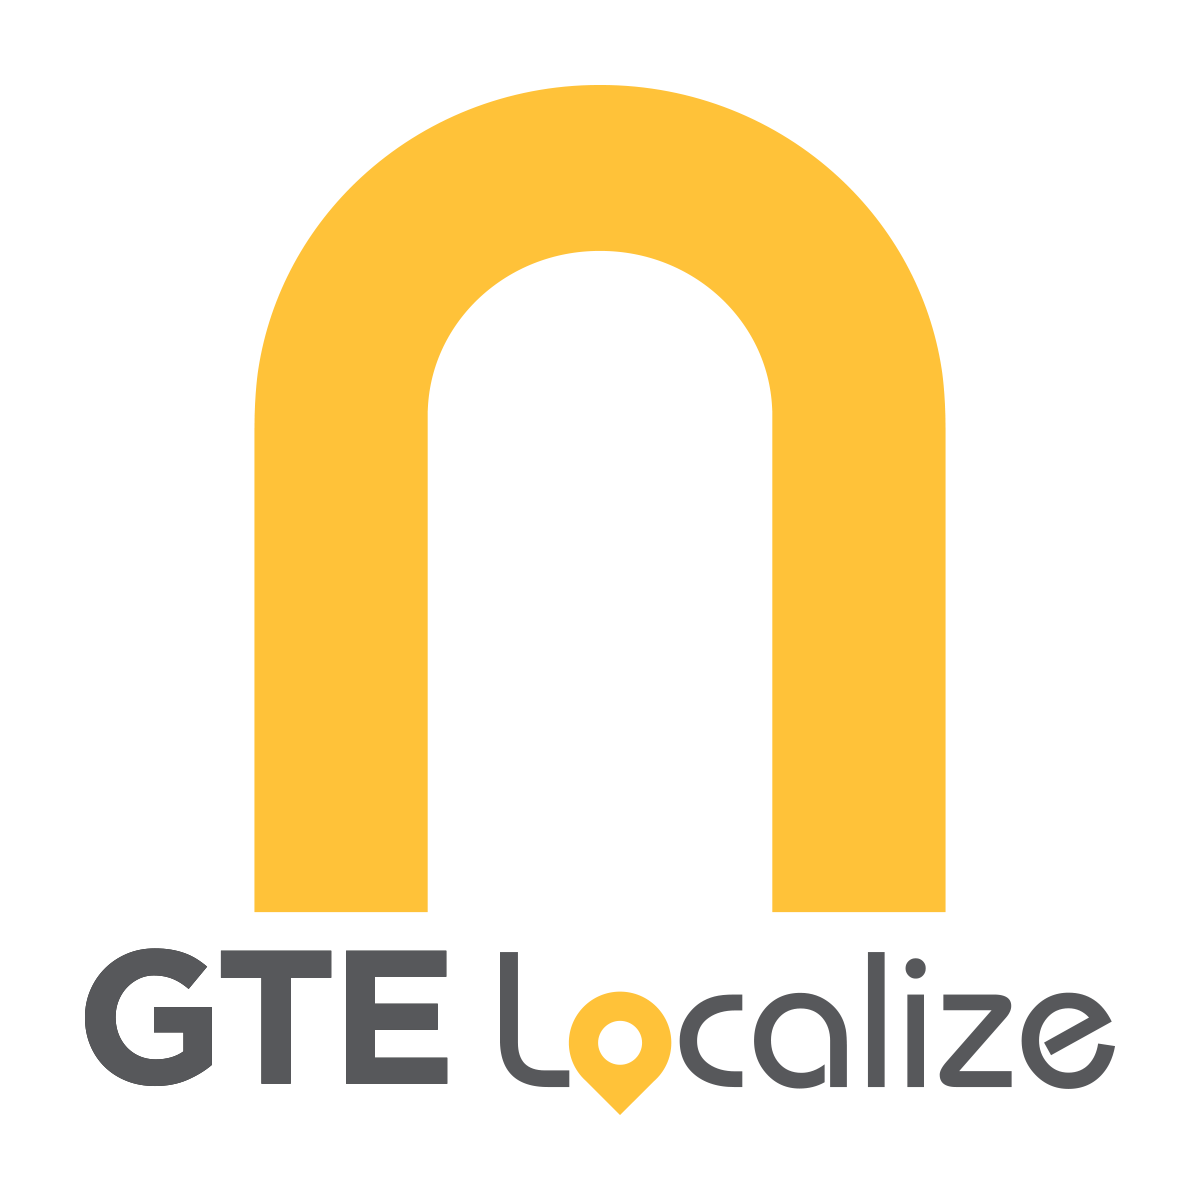 Logo GTELocalize color whitebg 2